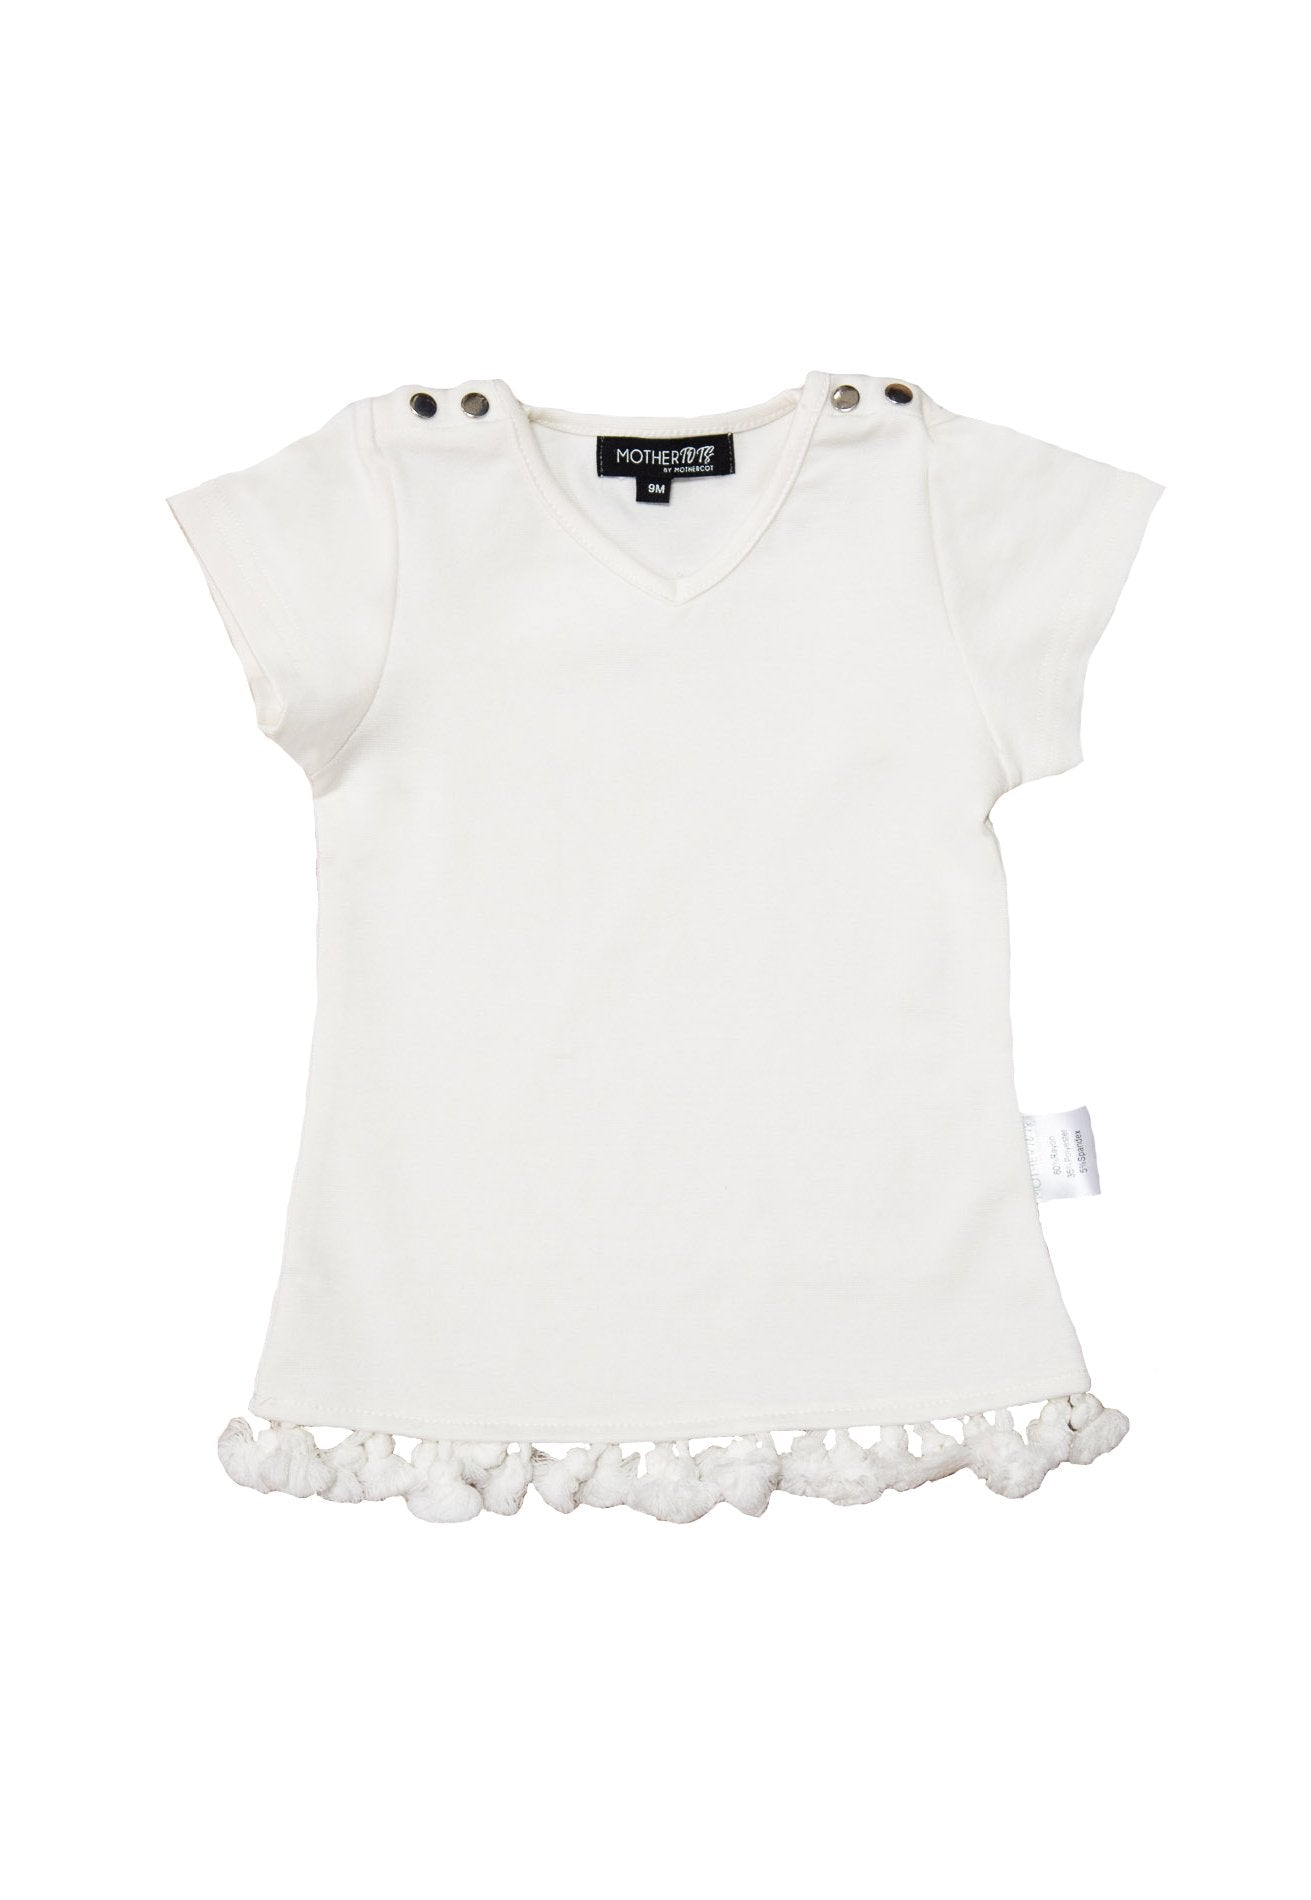 Pompom Baby Girl Tunic Top  by Jump Eat Cry - Maternity and nursing wear